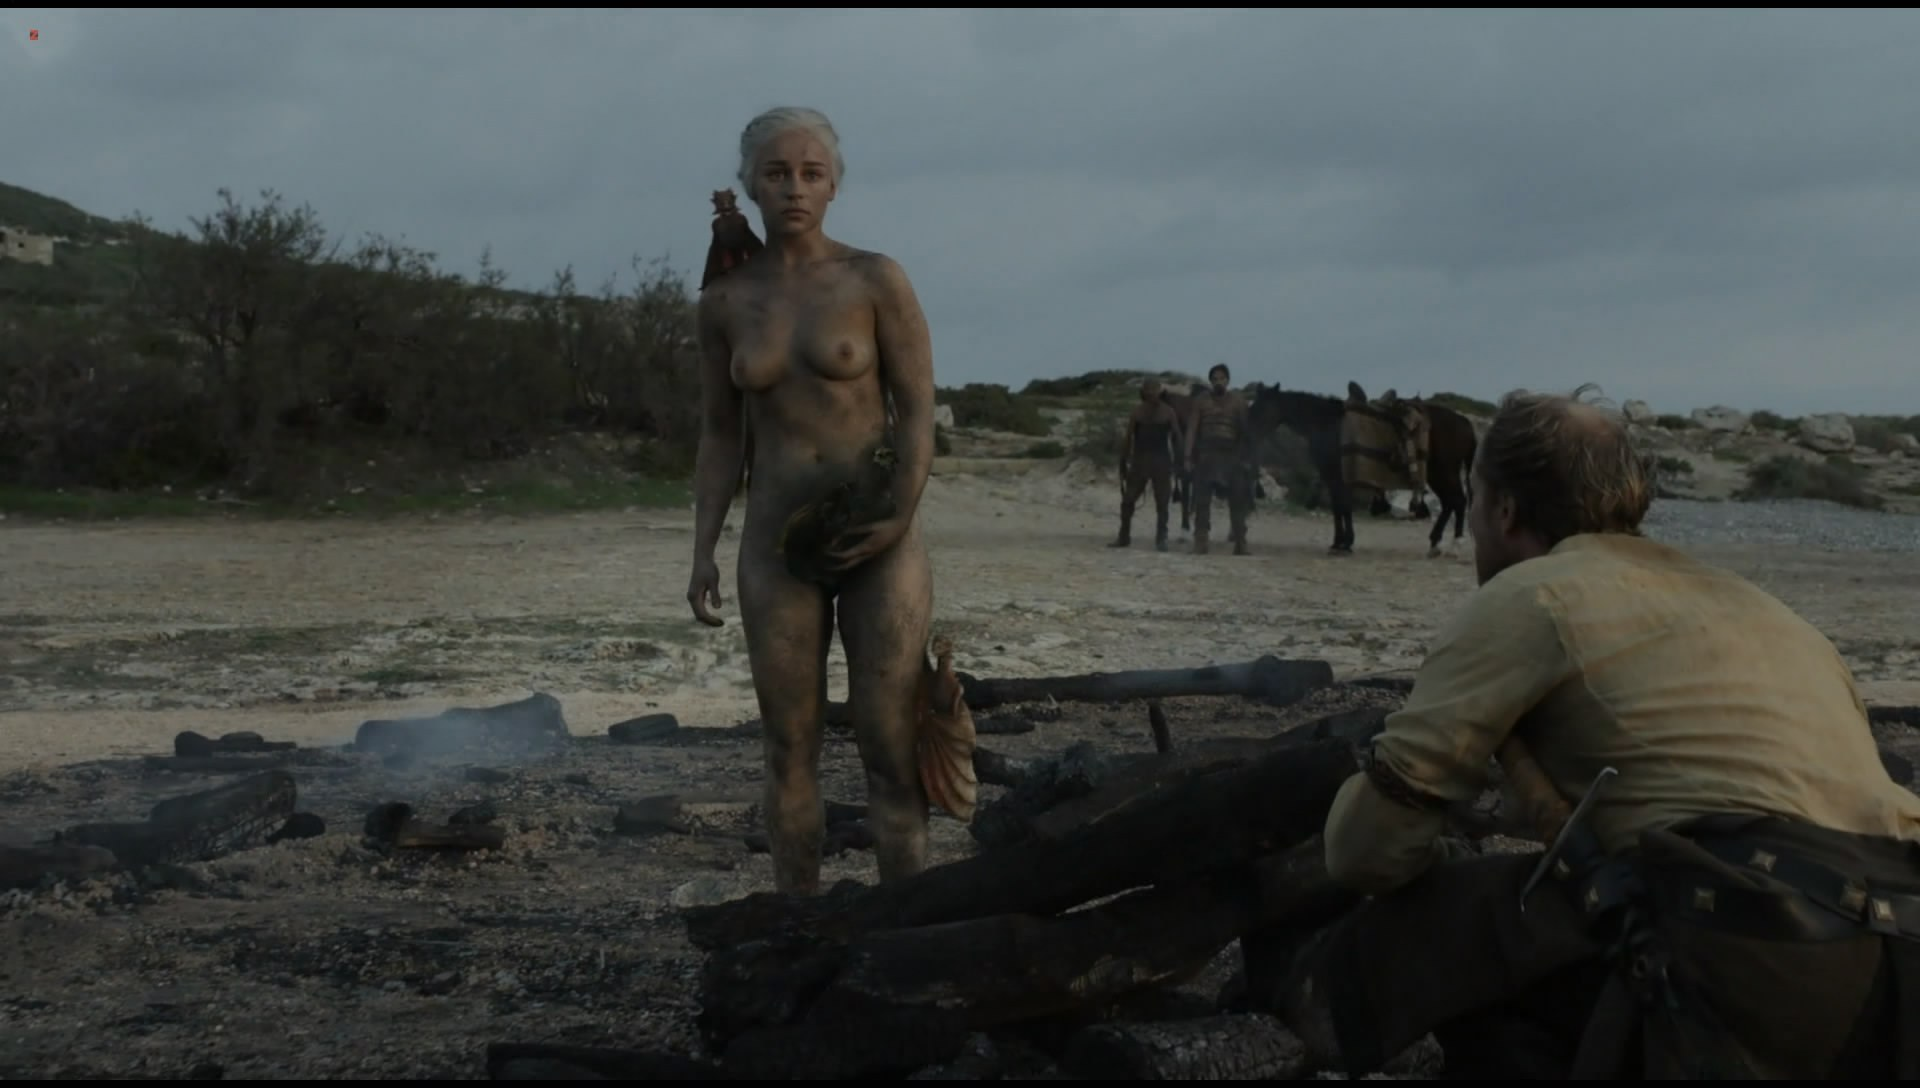 0313180705214_0_Emilia-Clarke-nude-topless-very-hot-in-Game-of-Thrones-s01e10-hdtv1080p-5.jpg